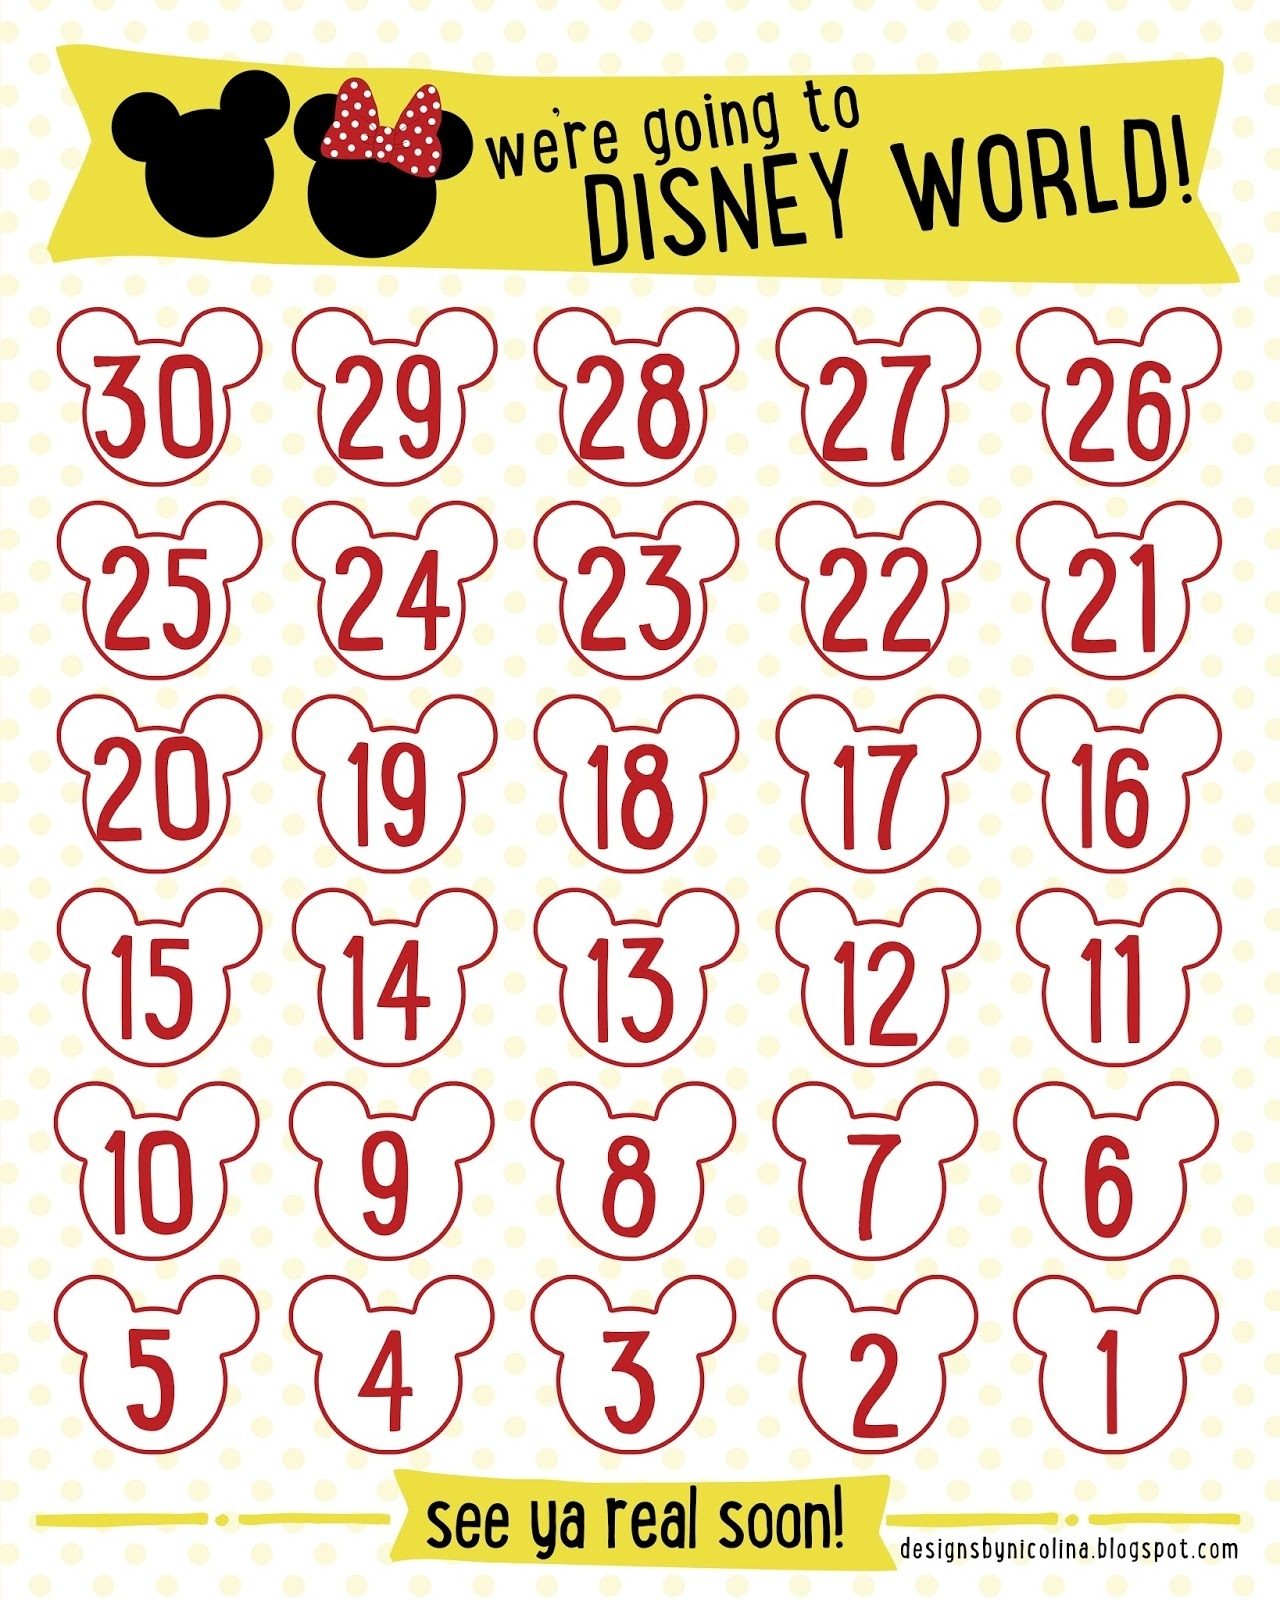 Designs By Nicolina: Disney Countdown! /// Free Printable /// Calendar Countdown To Print